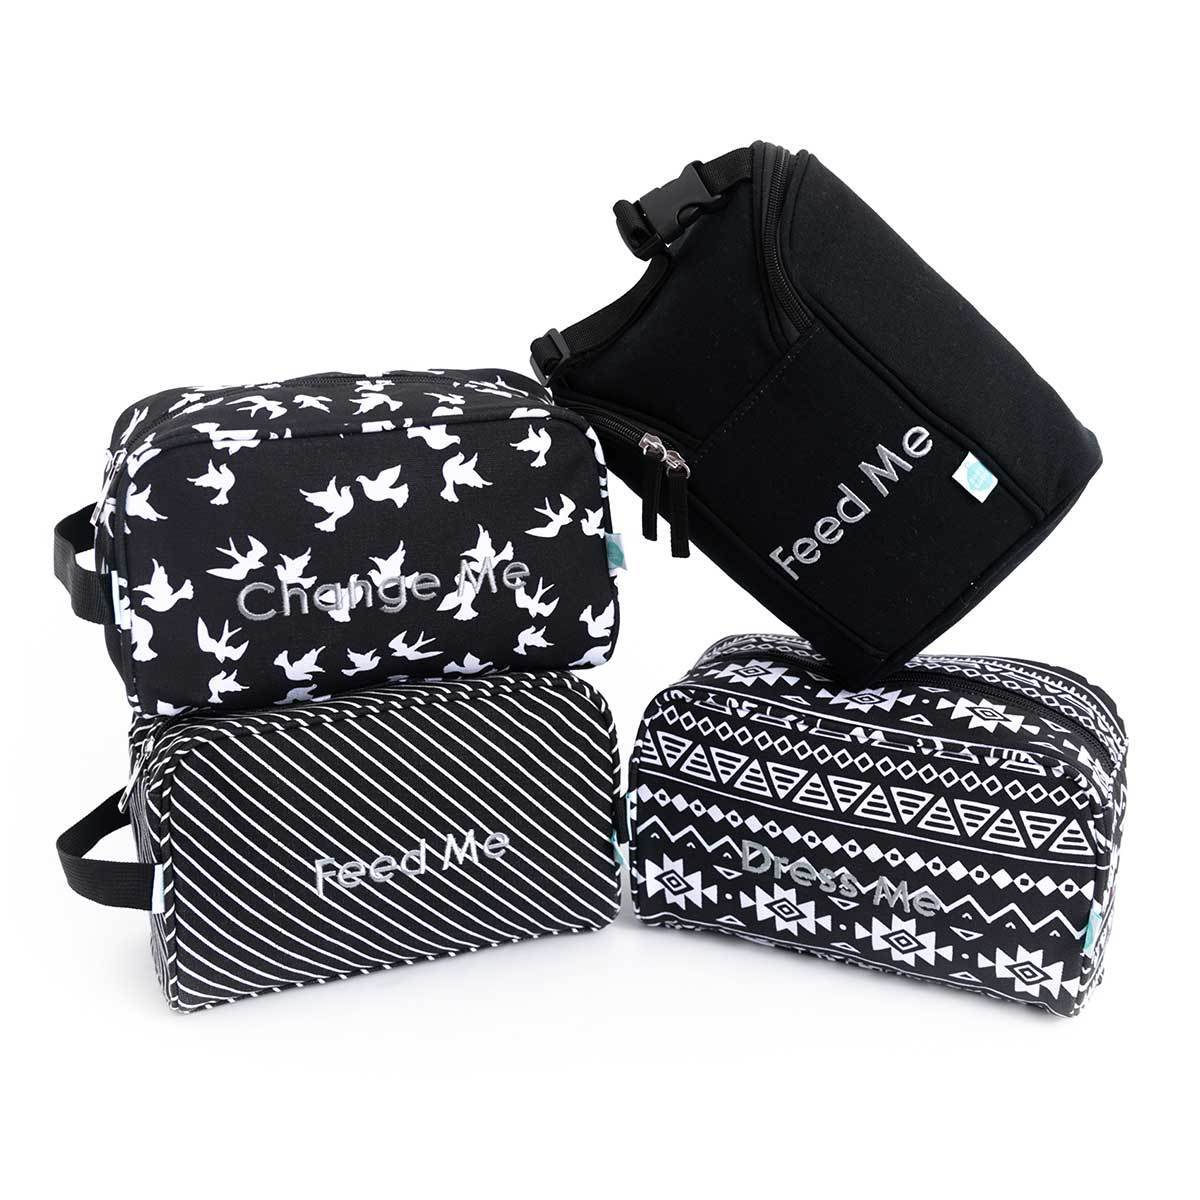 Coin Purses Coin Purses & Holders Contemplative Mini Soft Men Women Card Coin Key Holder Zip Change Purse Pouch Wallet Pouch Bag Purse Gi To Have Both The Quality Of Tenacity And Hardness